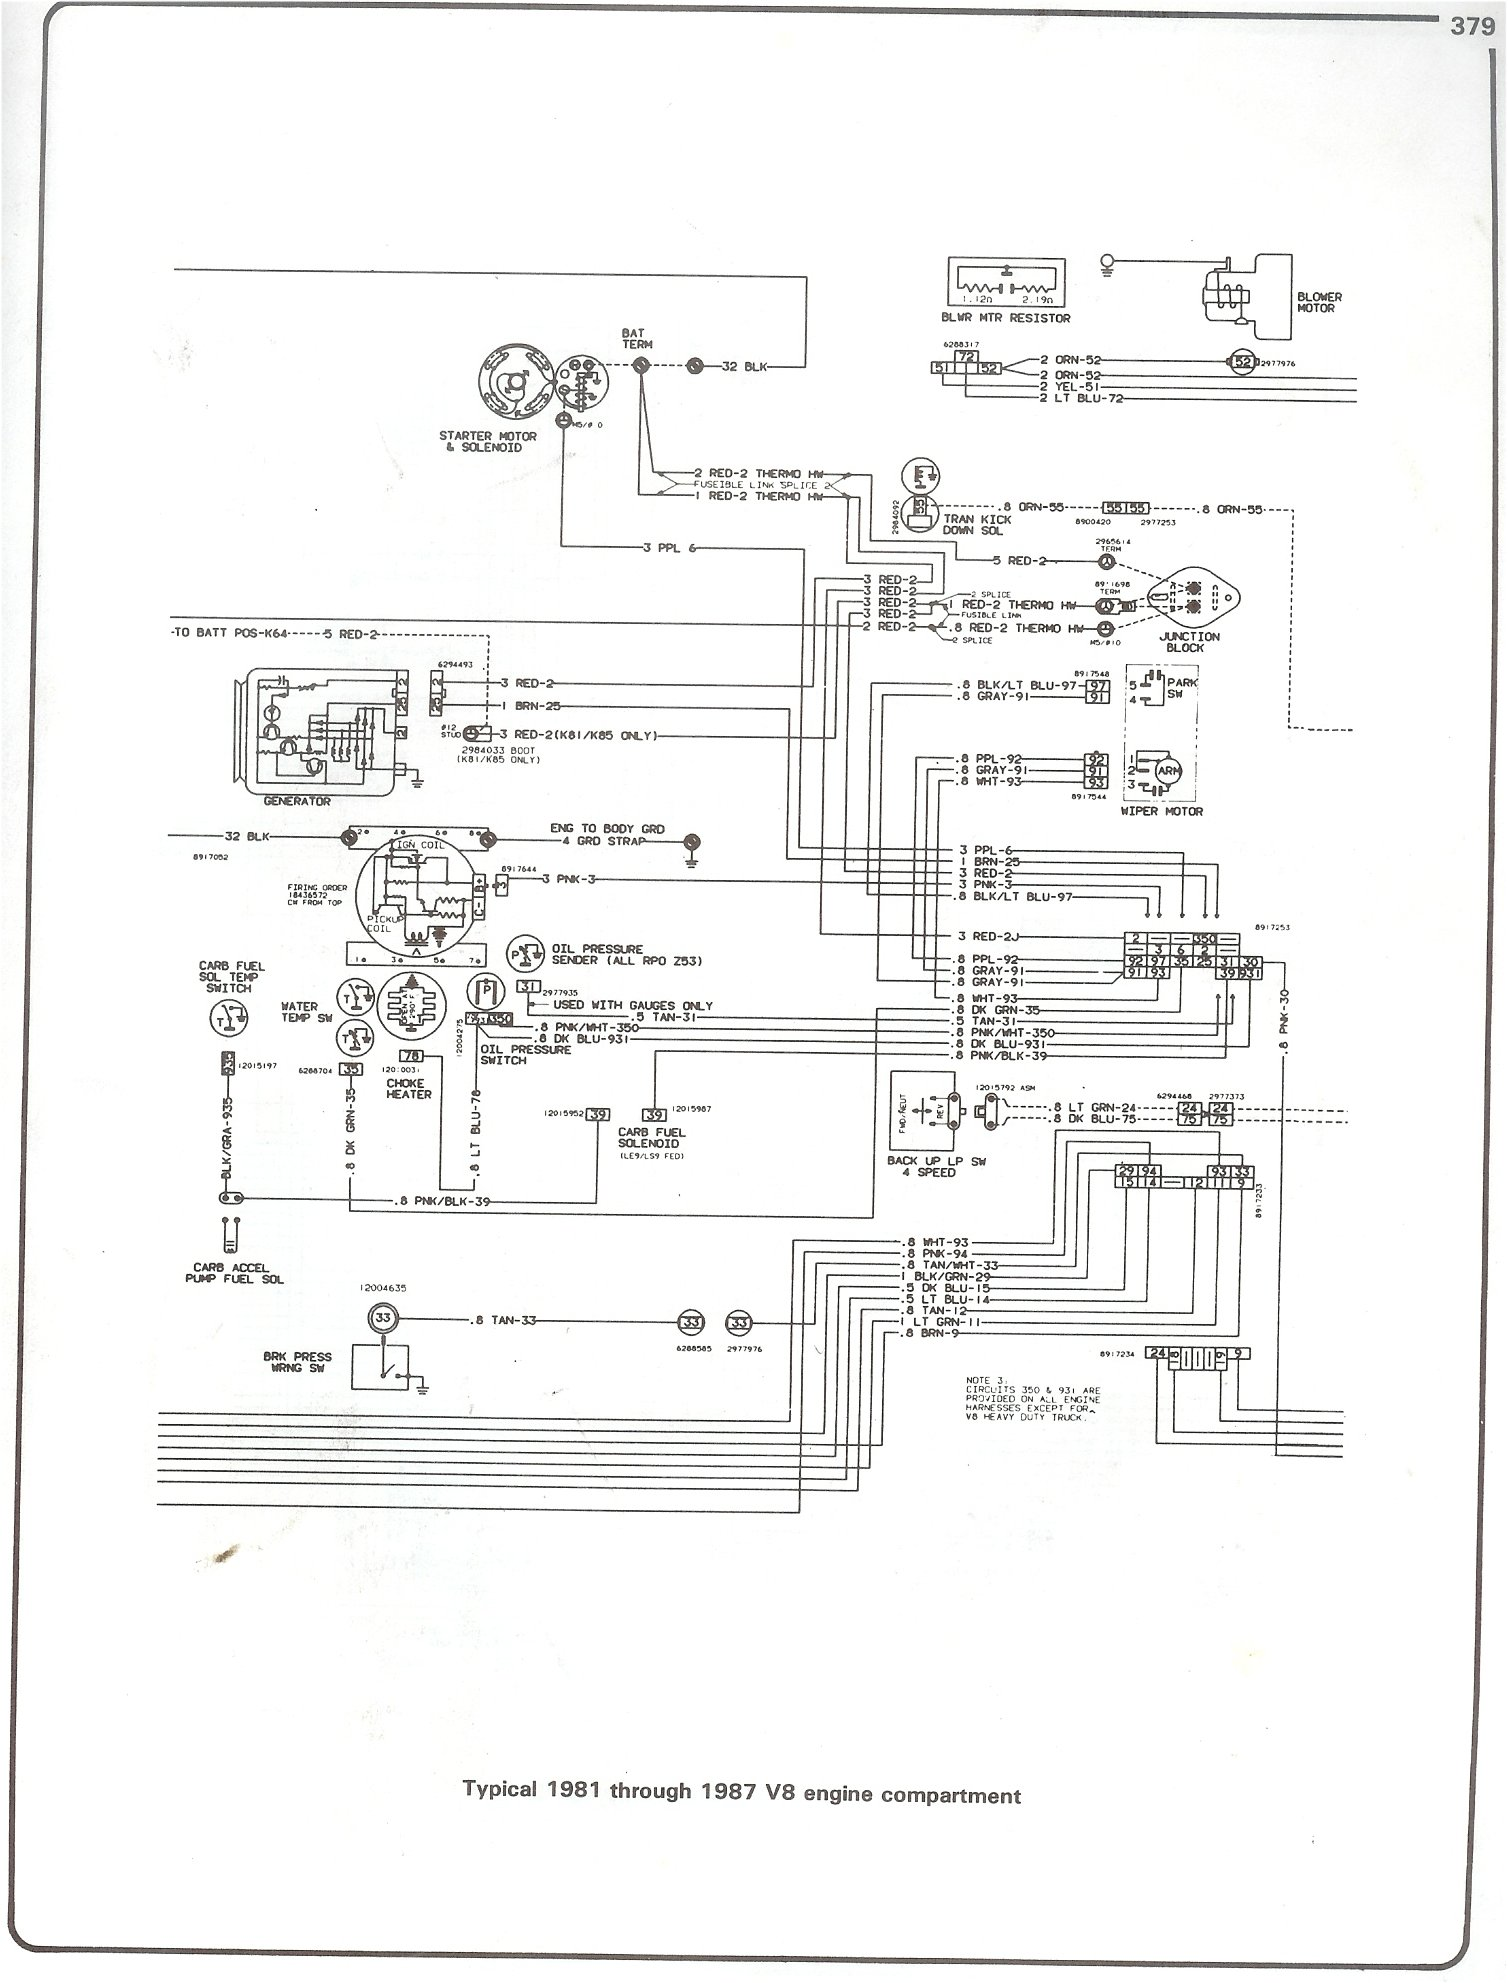 81 87_V8_engine complete 73 87 wiring diagrams 1987 chevy wiring diagram at gsmportal.co